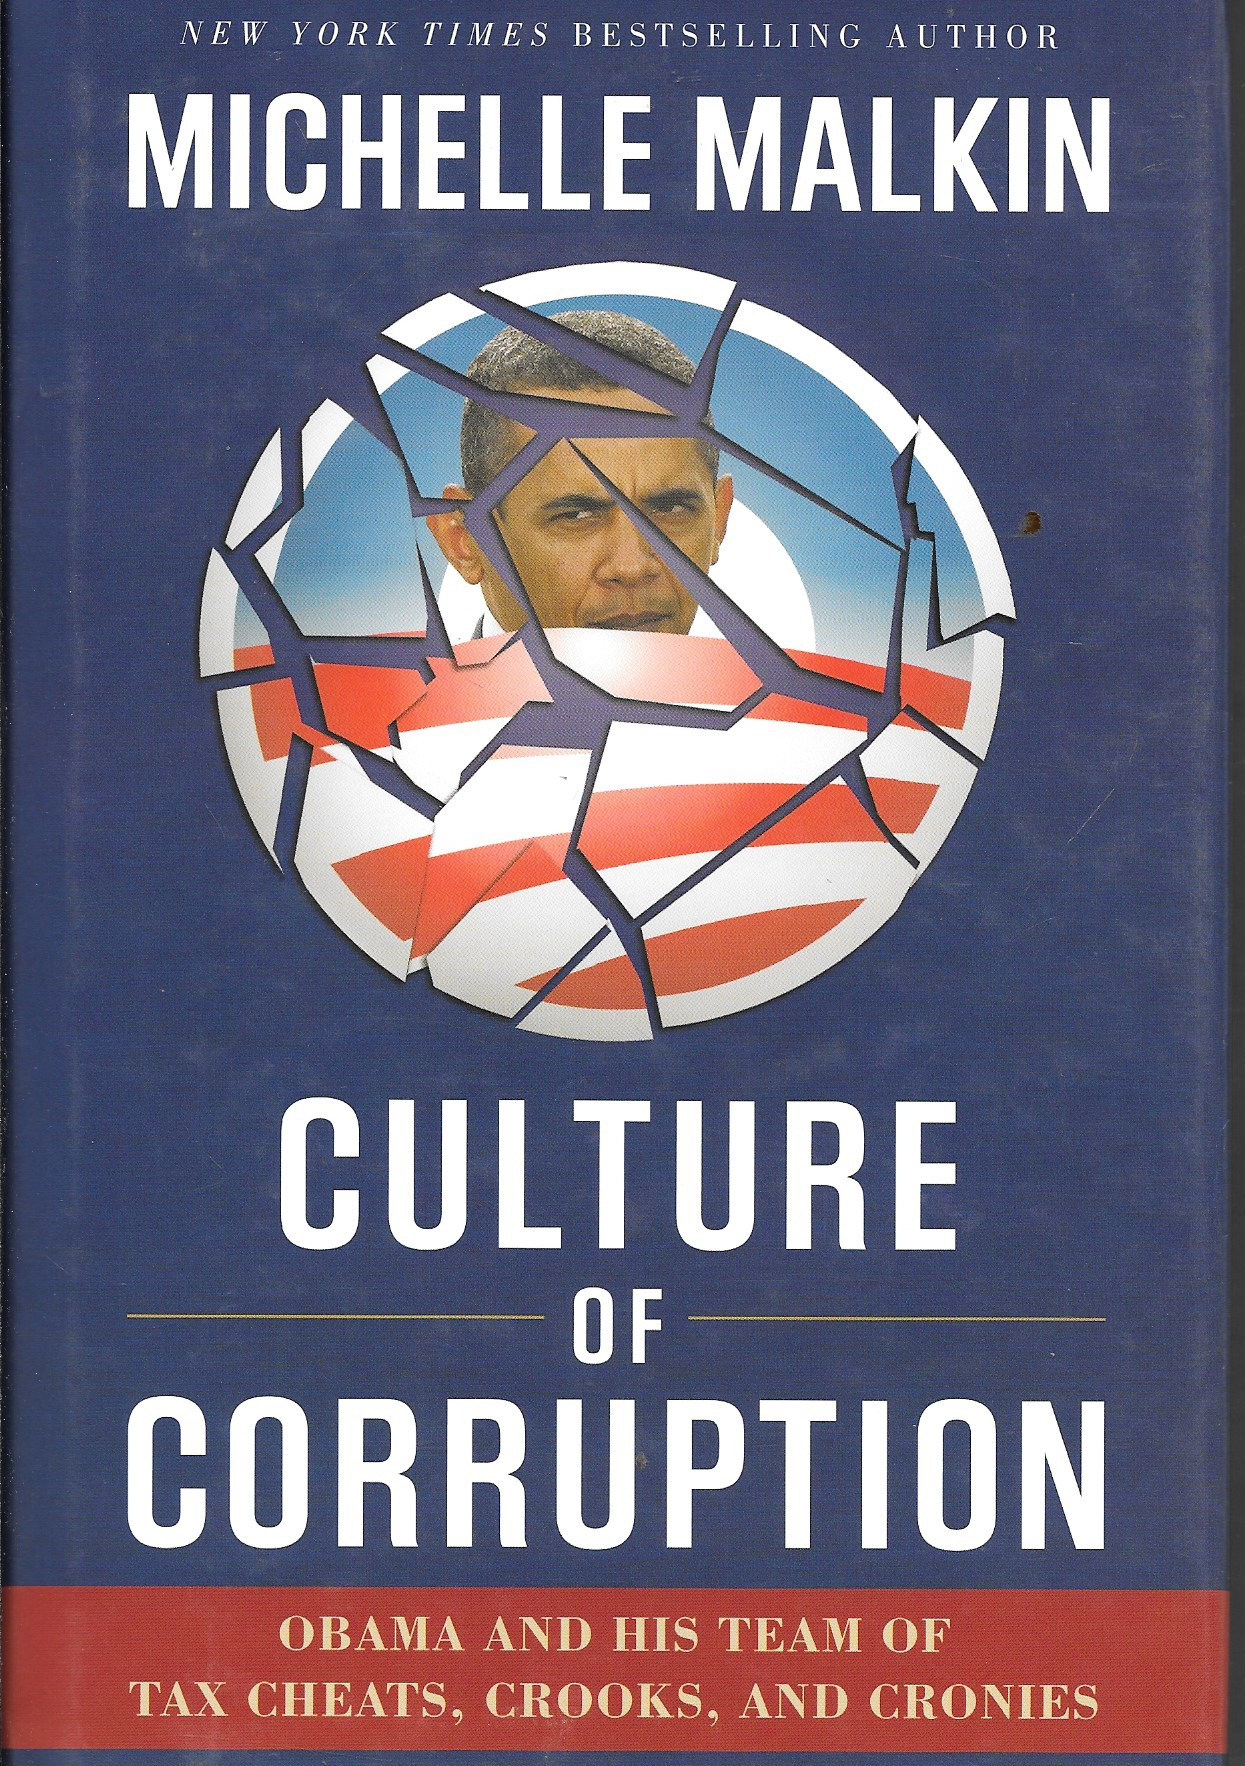 Image for Culture Of Corruption Obama and His Team of Tax Cheats, Crooks, and Cronies